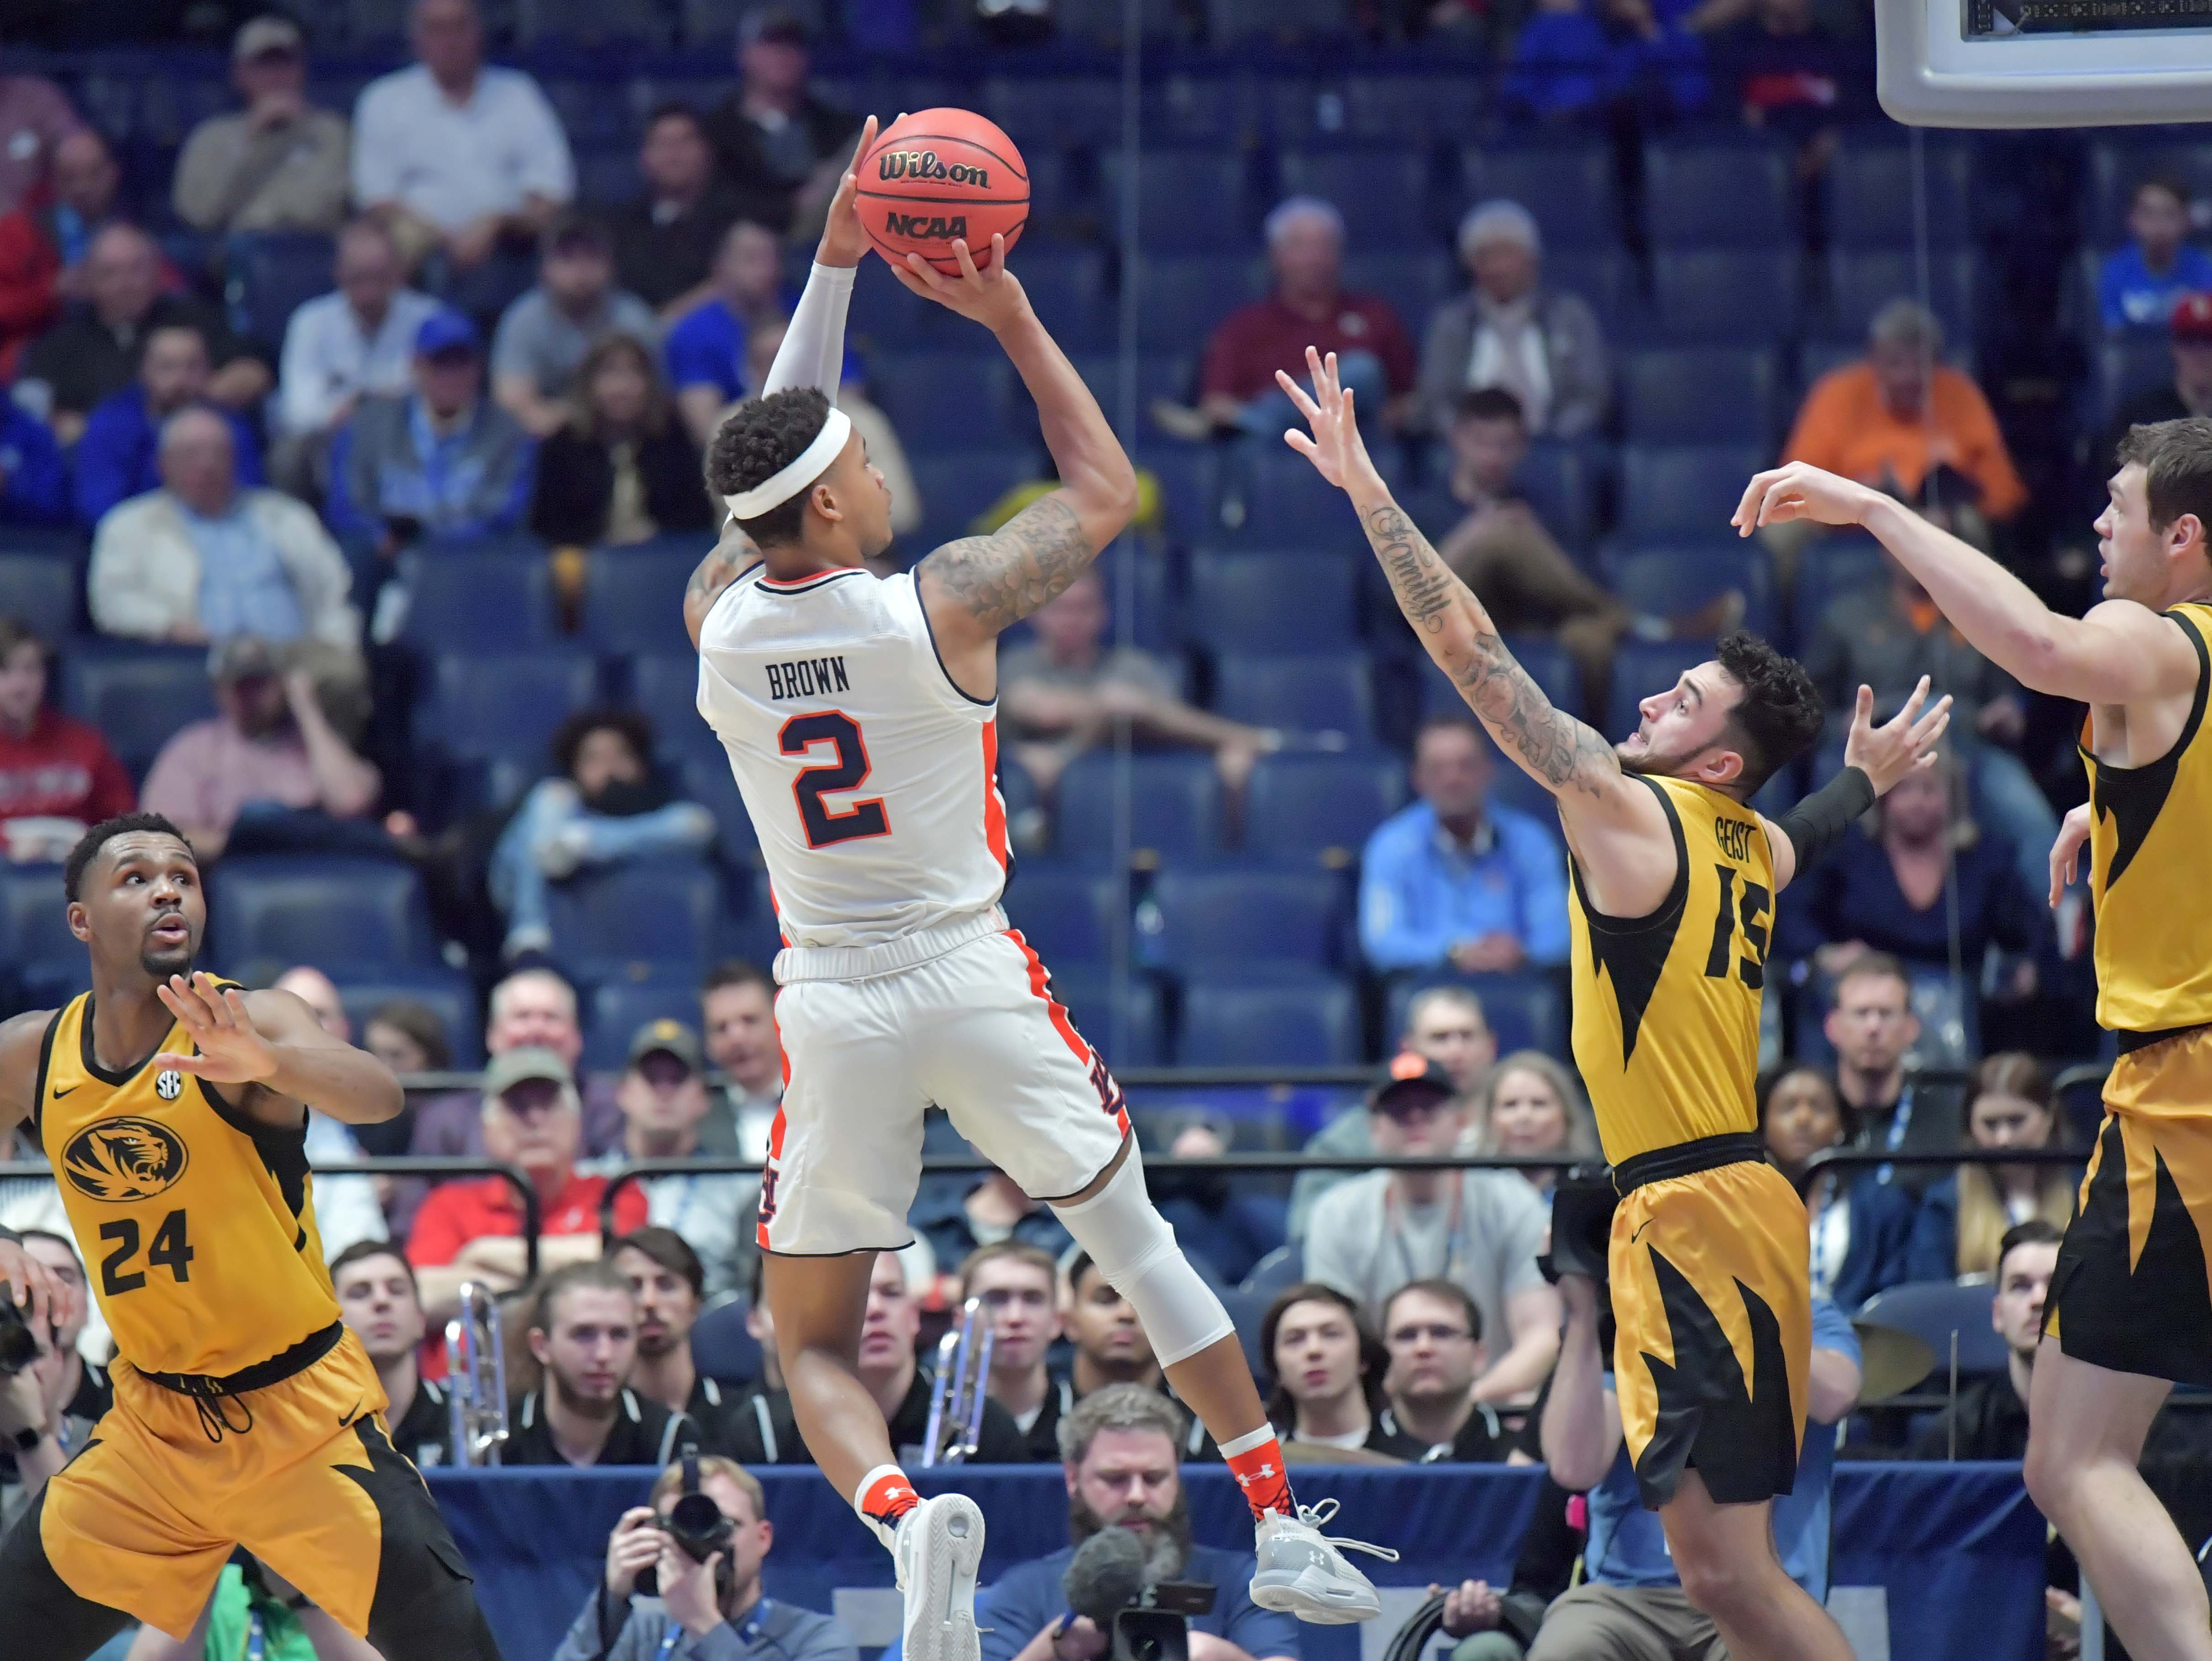 Mar 14, 2019; Nashville, TN, USA; Auburn Tigers guard Bryce Brown (2) shoots the ball as Missouri Tigers guard Jordan Geist (15) defends  in the SEC conference tournament at Bridgestone Arena. Mandatory Credit: Jim Brown-USA TODAY Sports